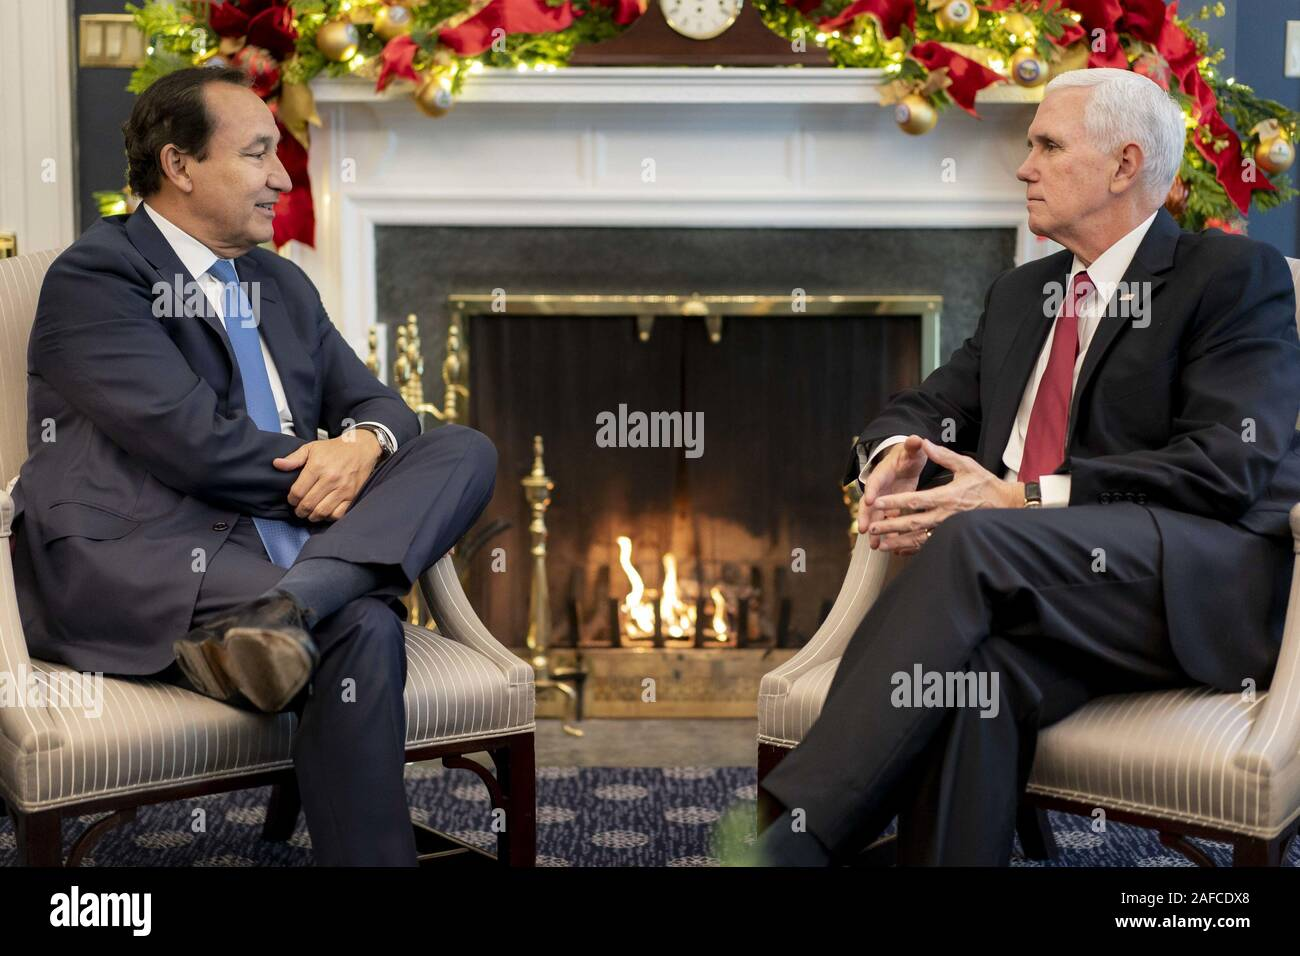 Washington, United States Of America. 12th Dec, 2019. Vice President Mike Pence meets with United Airlines CEO Oscar Munoz Thursday, Dec. 12, 2019, in his West Wing Office of the White House. People: Vice President Mike Pence Credit: Storms Media Group/Alamy Live News Stock Photo